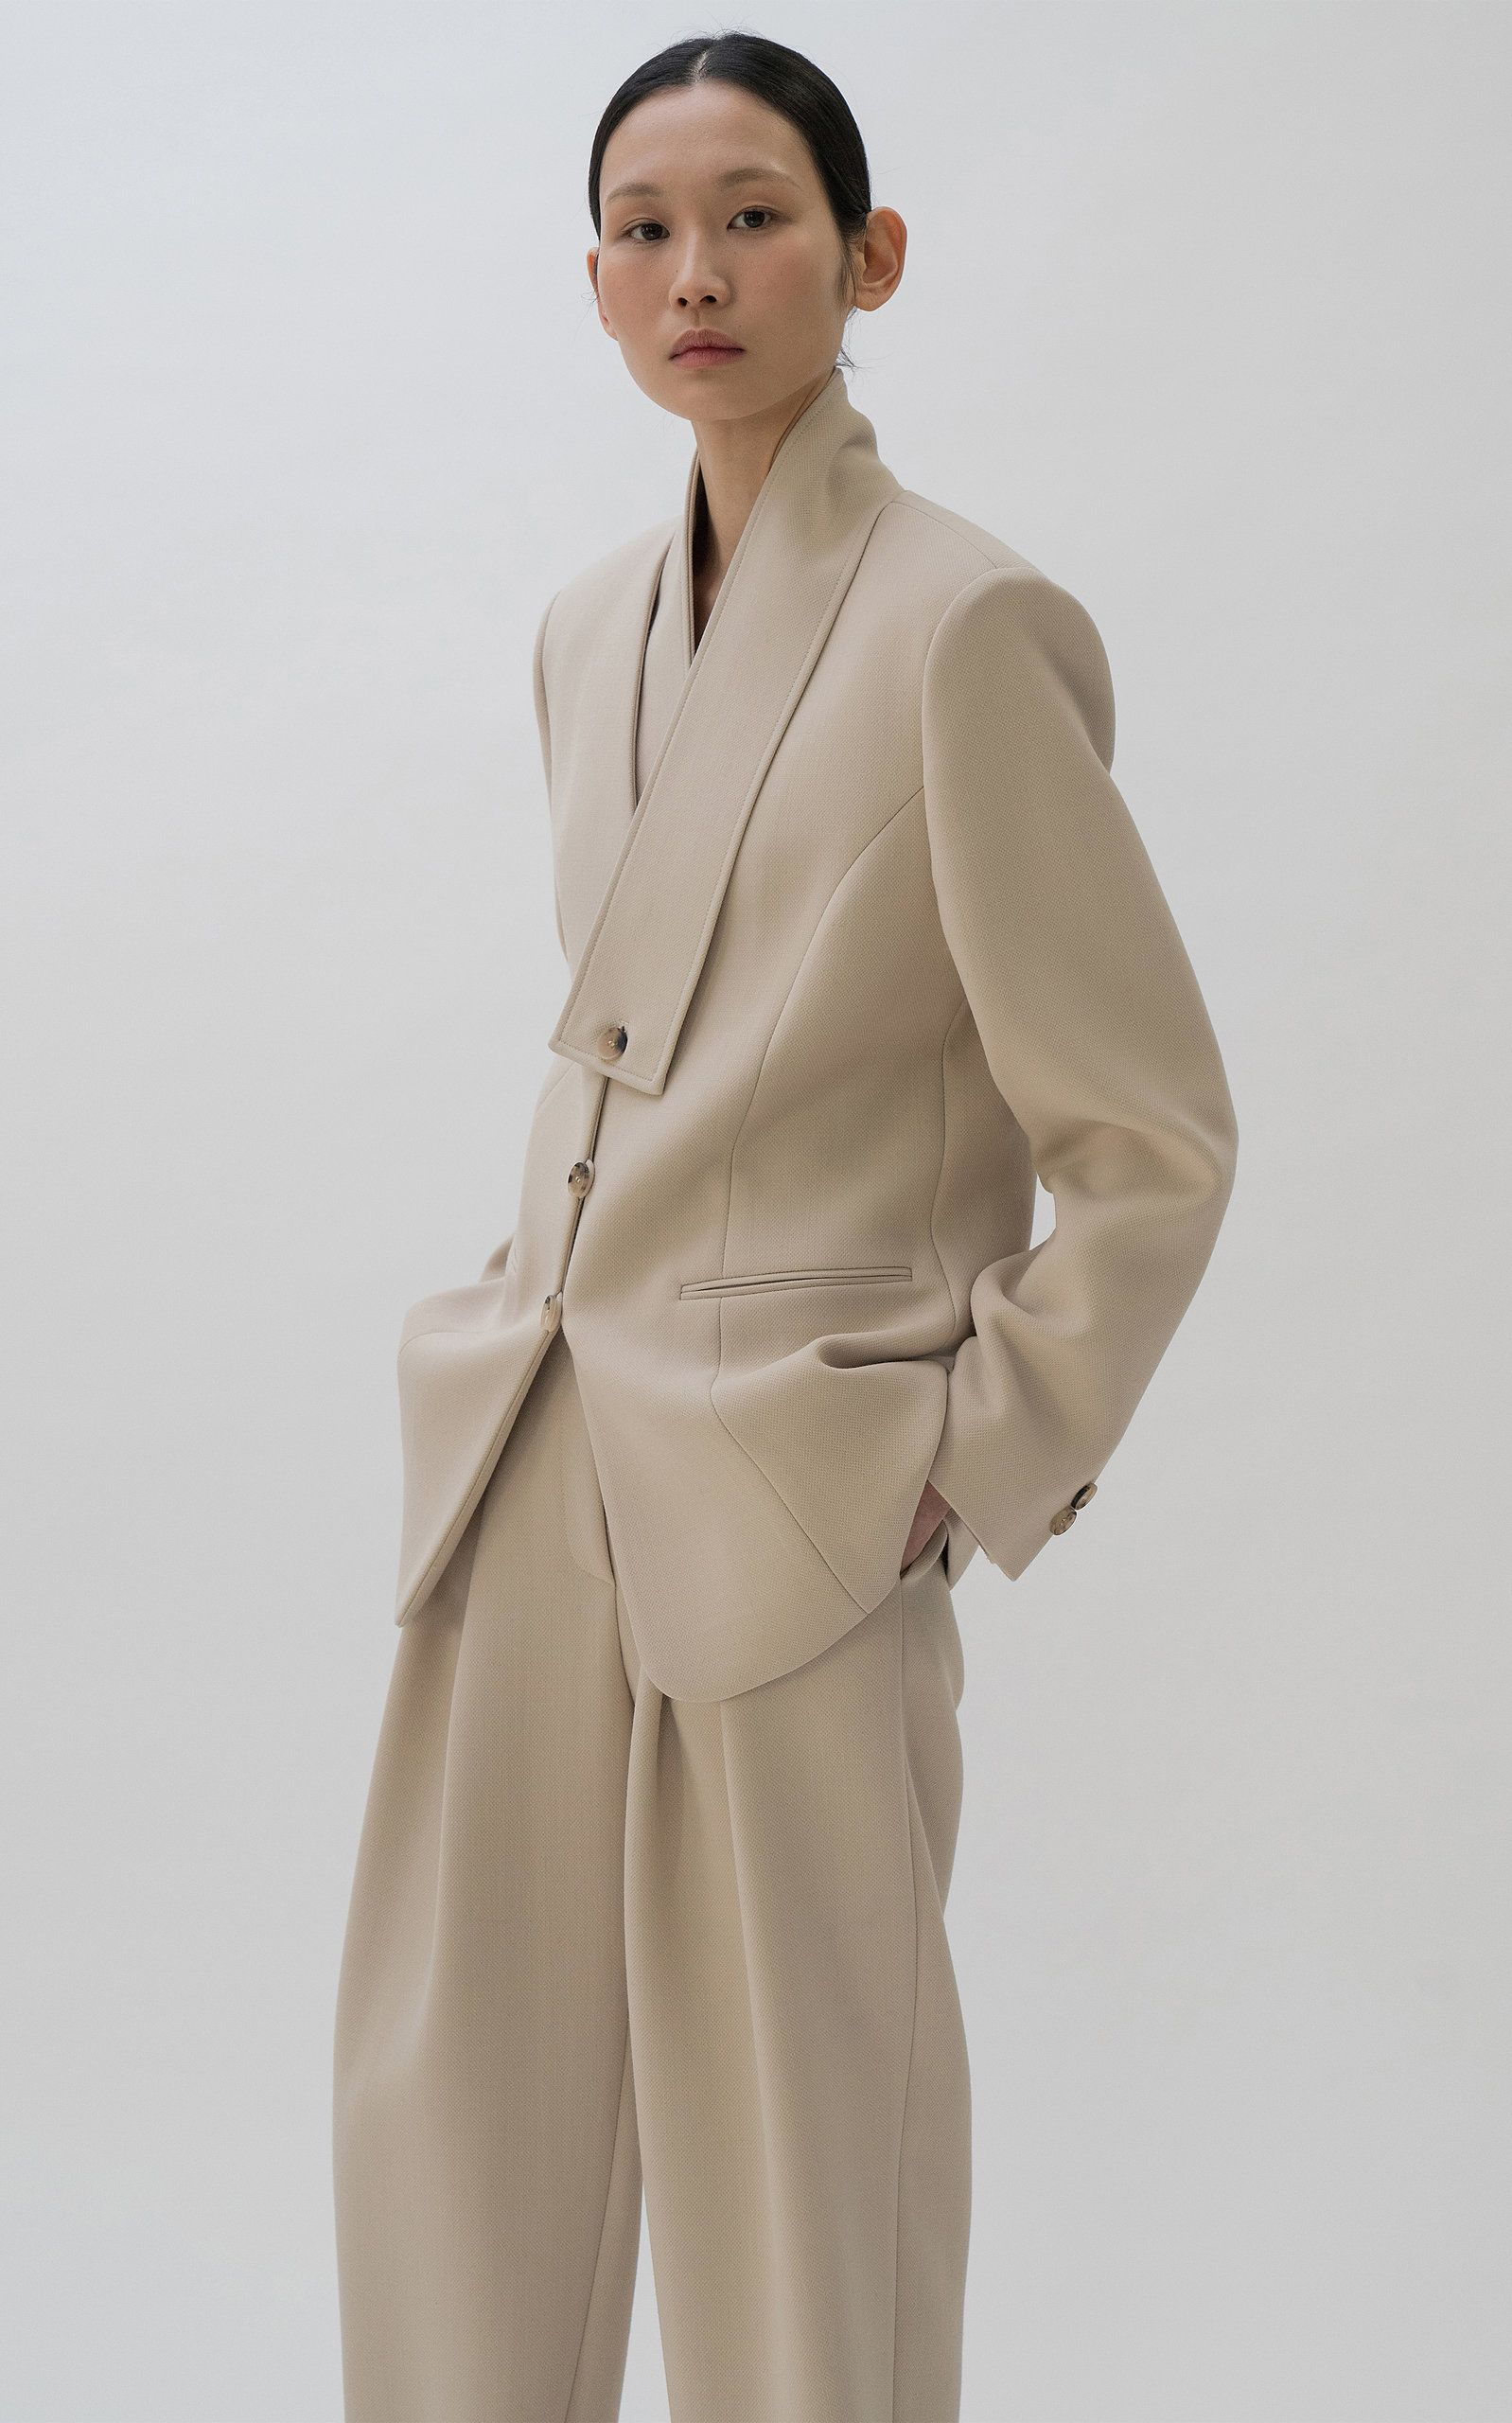 Le17 Septembre's selection of neutral pieces in structural silhouettes are the perfect building blocks of a minimalist wardrobe. Expertly tailored from mid-weight cady, this blazer is designed with a wrapped lapel and tortoiseshell button fastenings. Wear yours with the collection's matching trousers for a complete set.